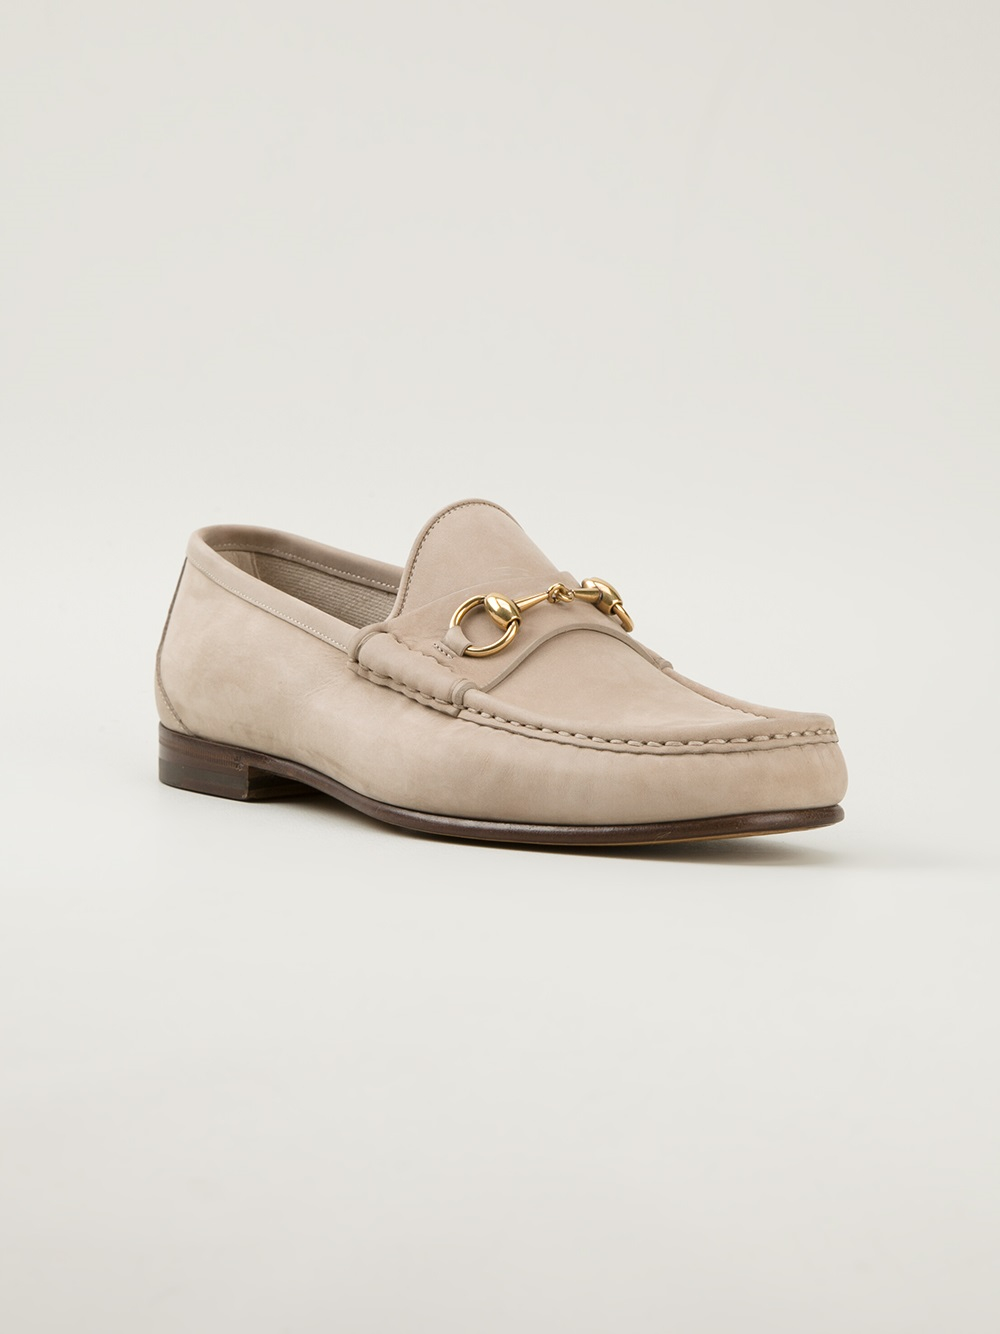 Lyst - Gucci Driving Loafers in Natural for Men